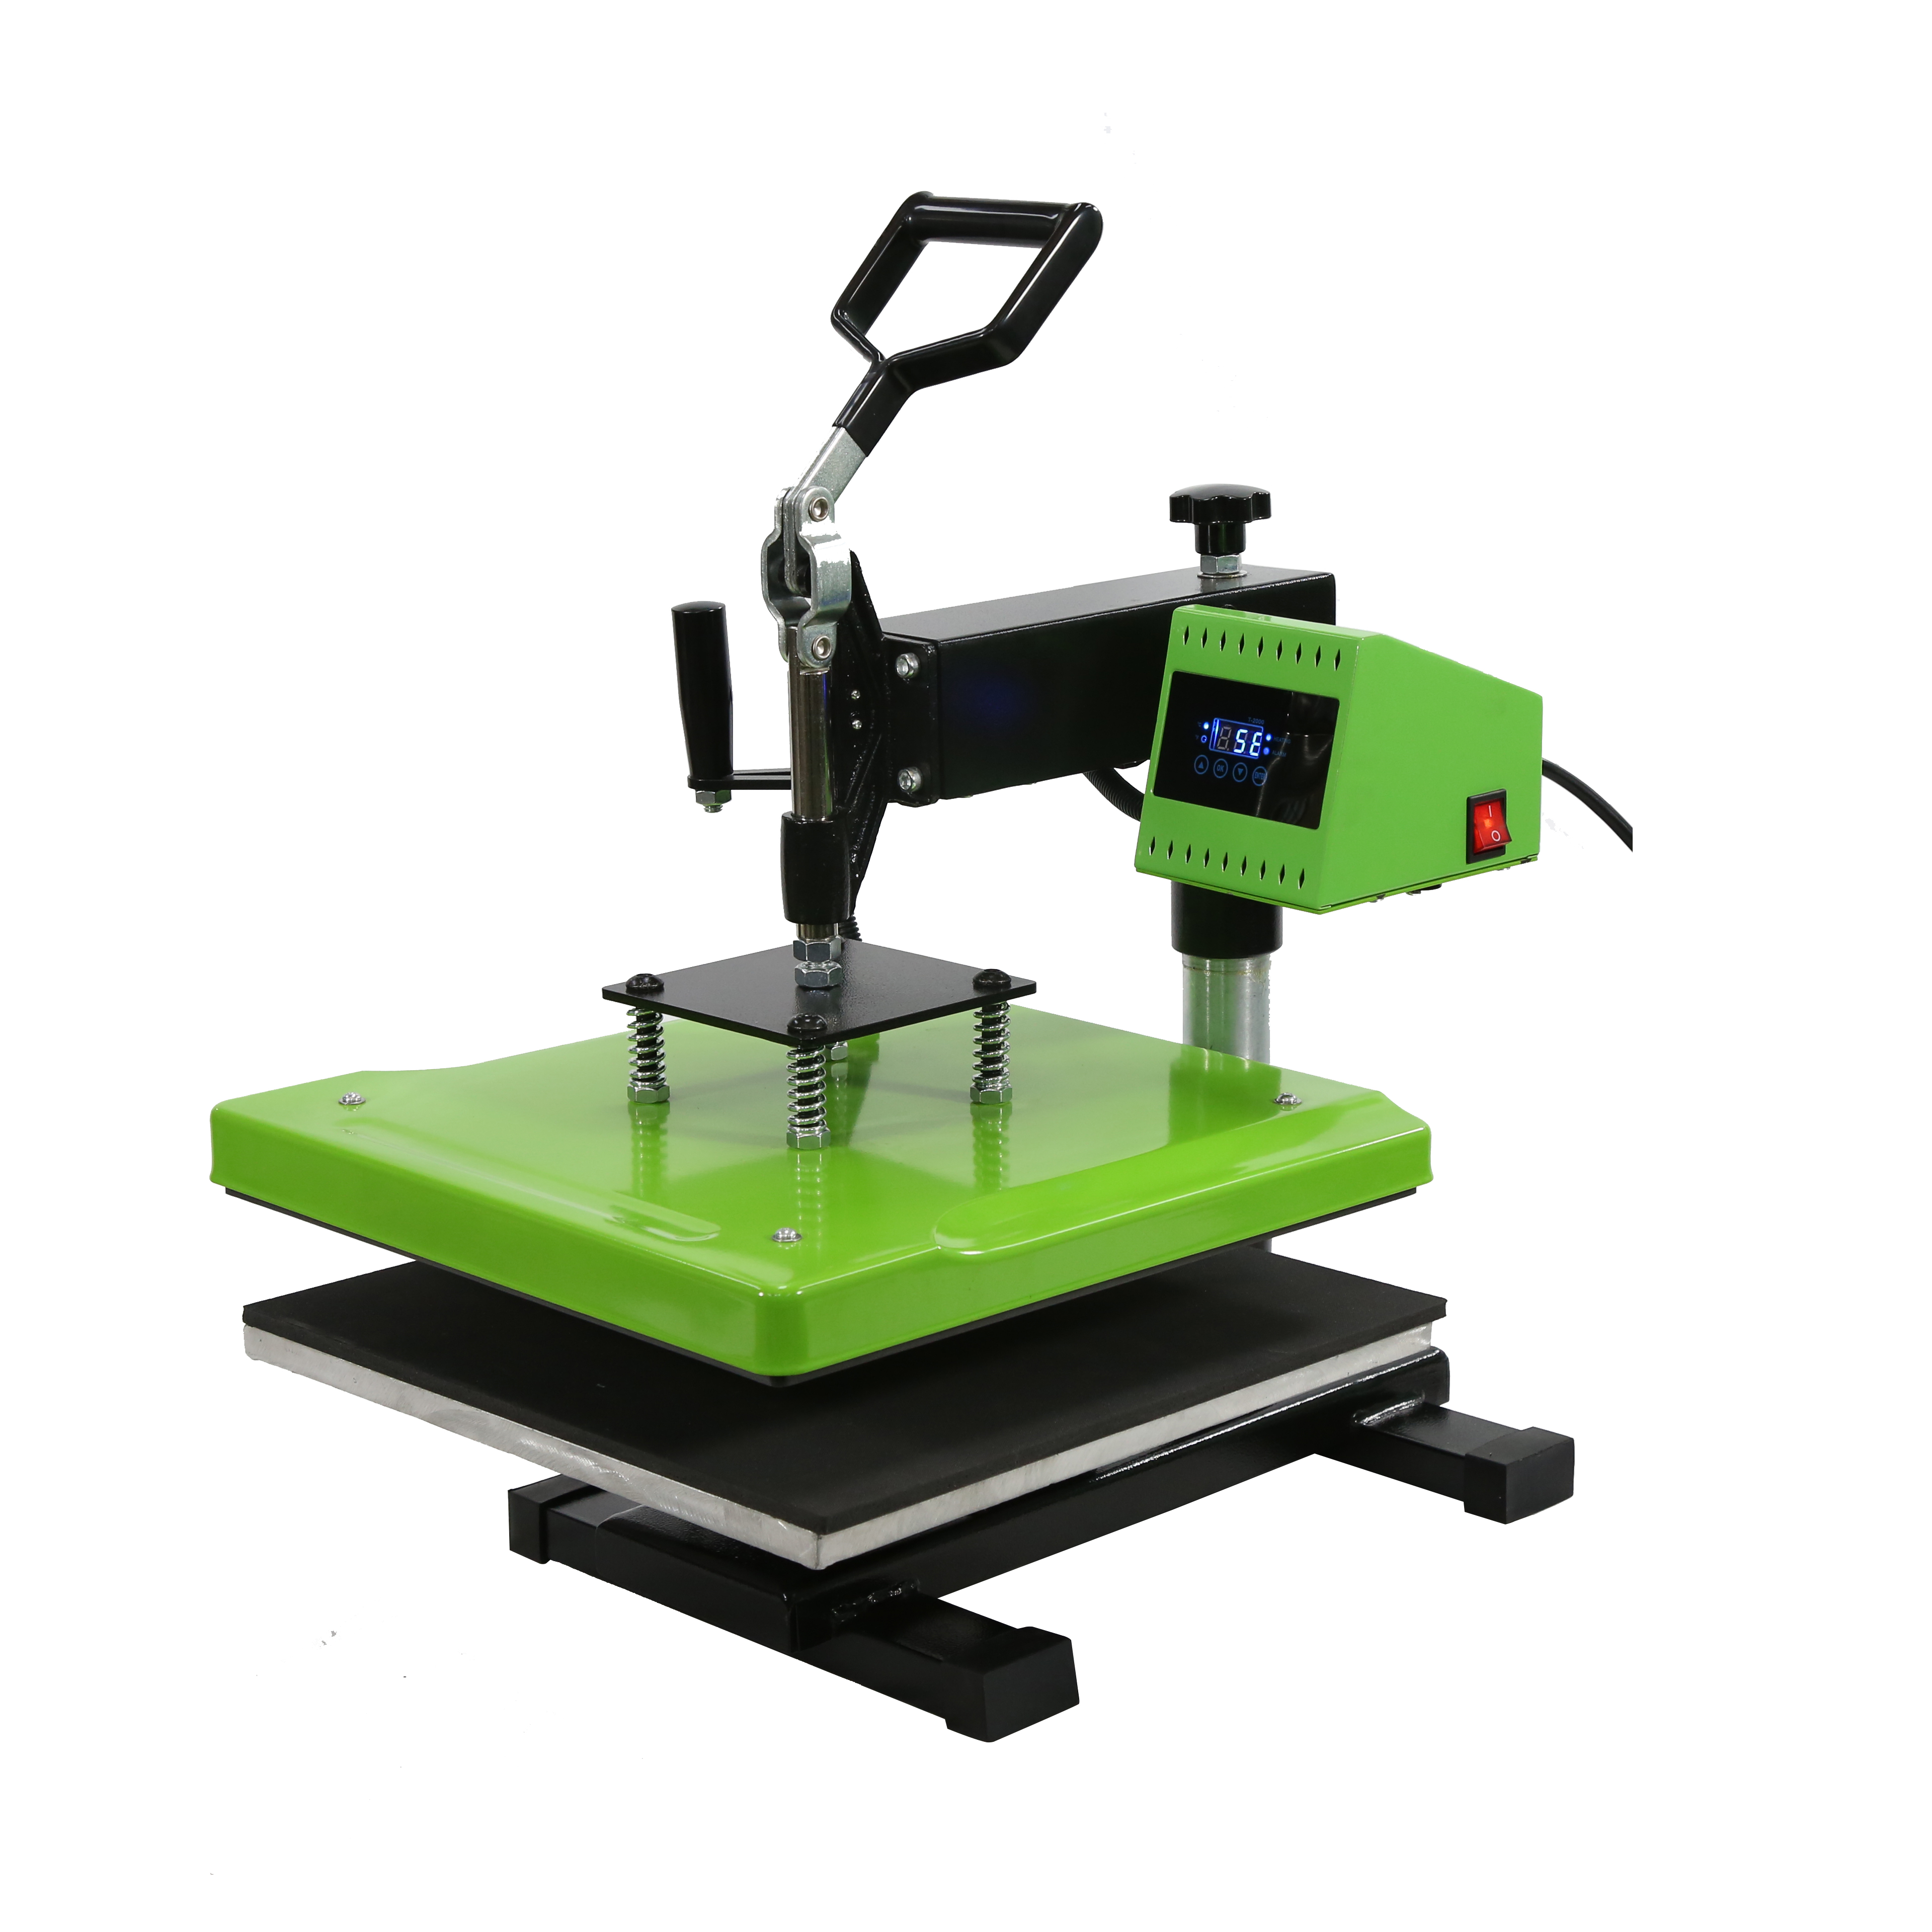 360° Rotary Swing Away Head Manual Heat Transfer Machine Featured Image